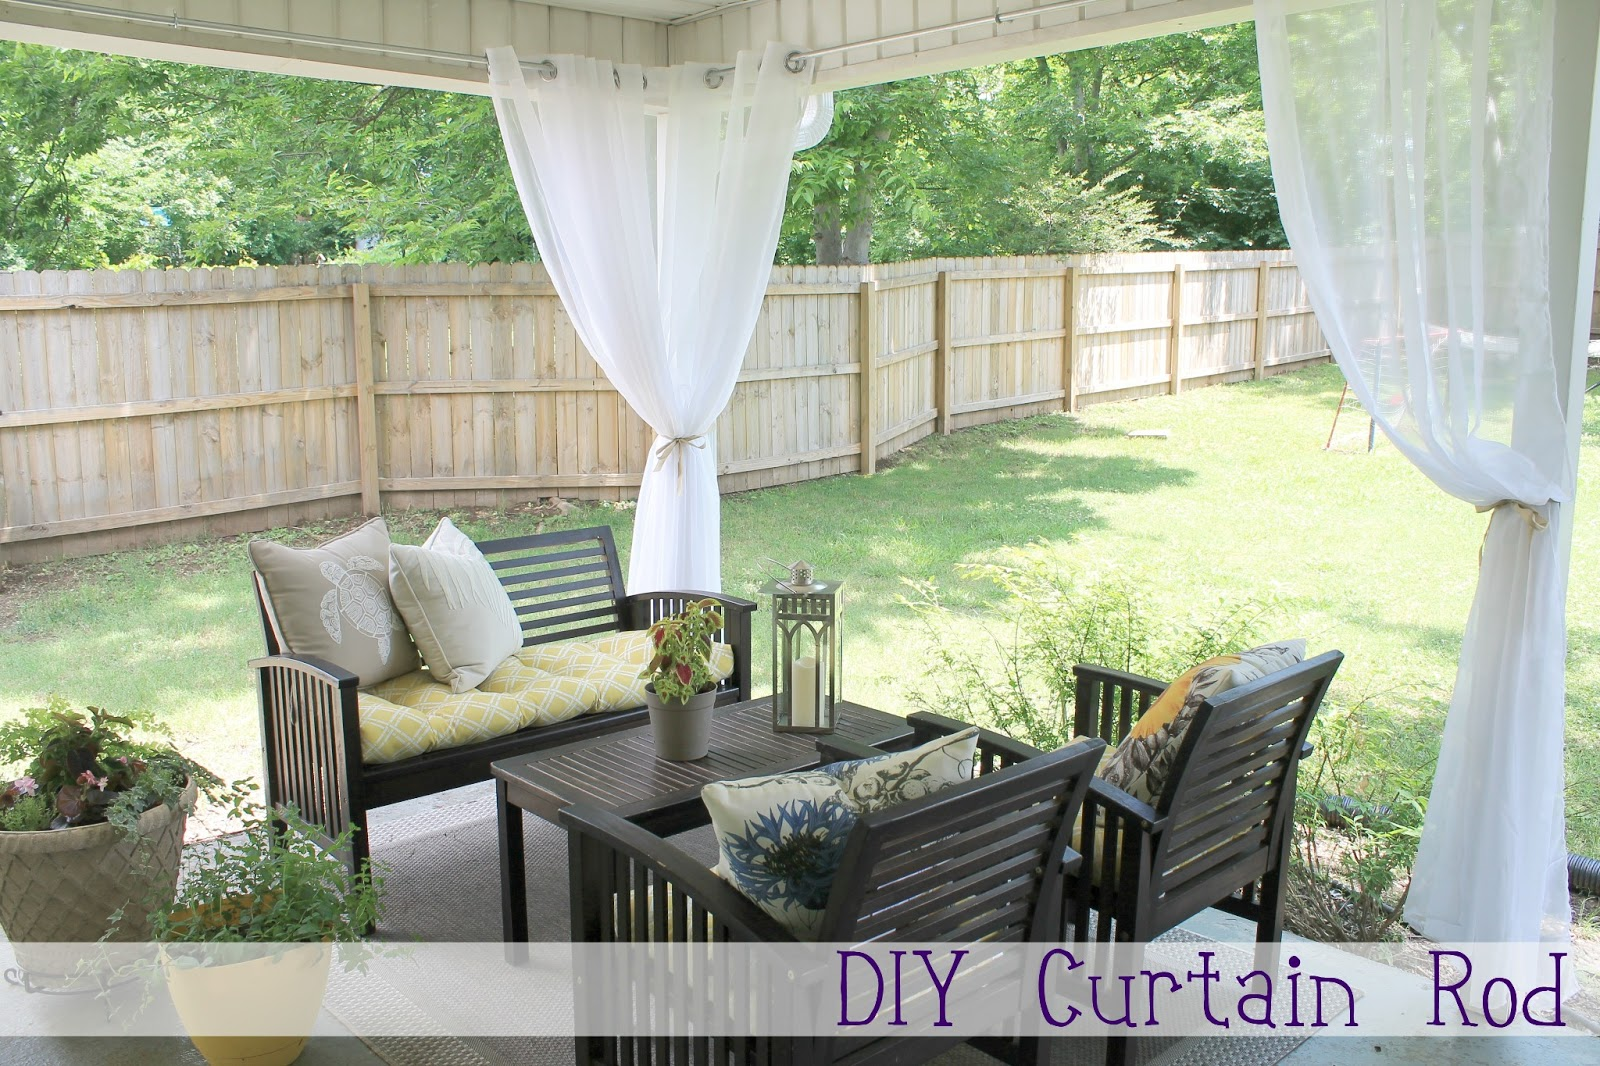 Gazebo curtains outdoor - Gazebo Curtains Outdoor 9